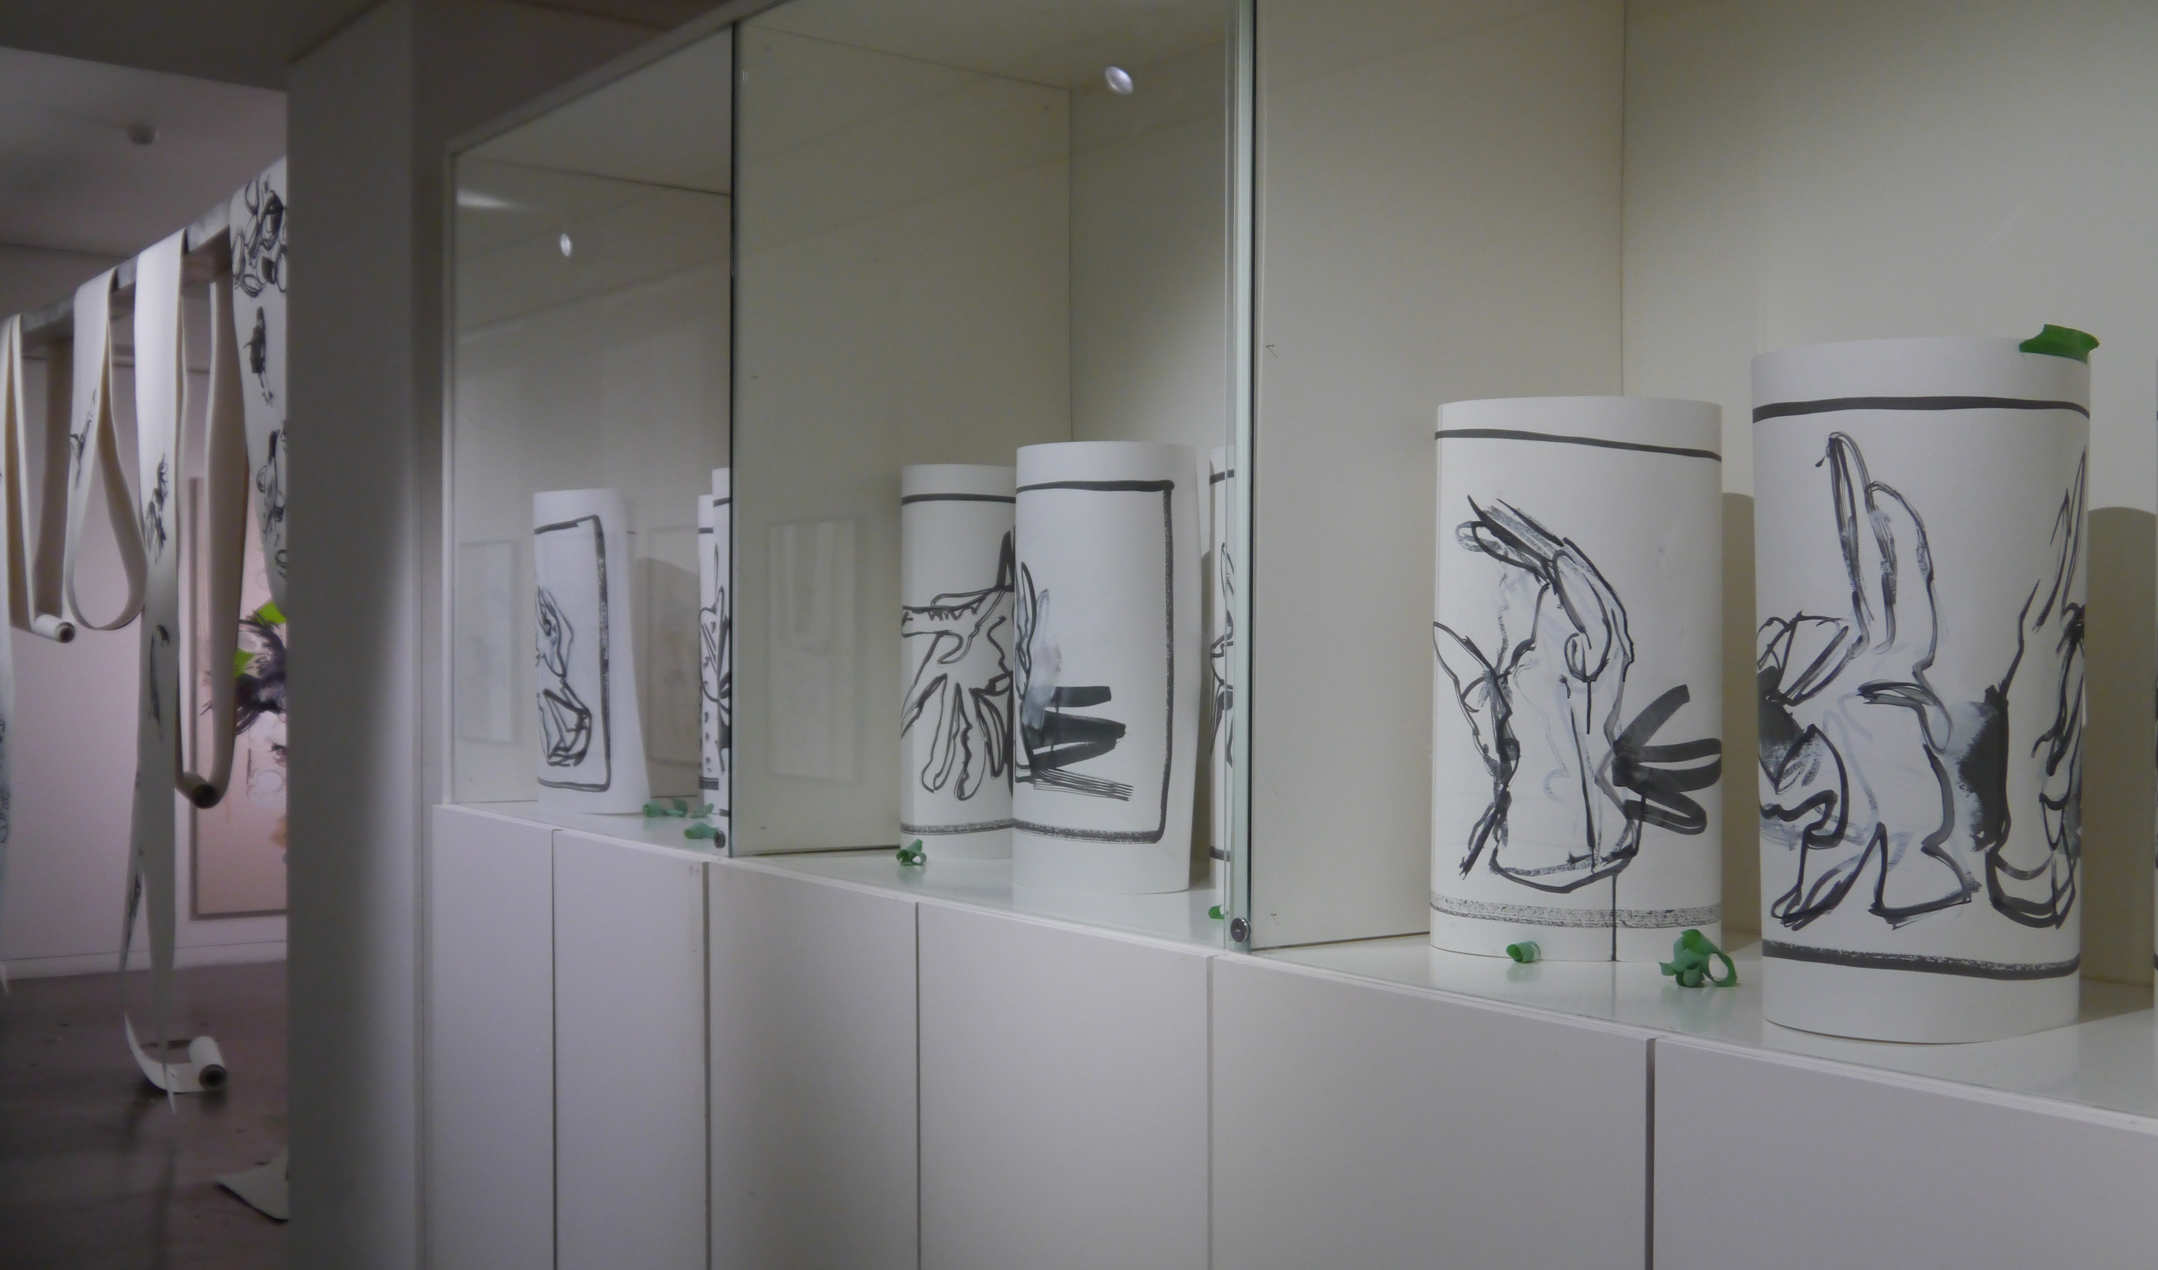 Sue Sluglett drawings in cabinet